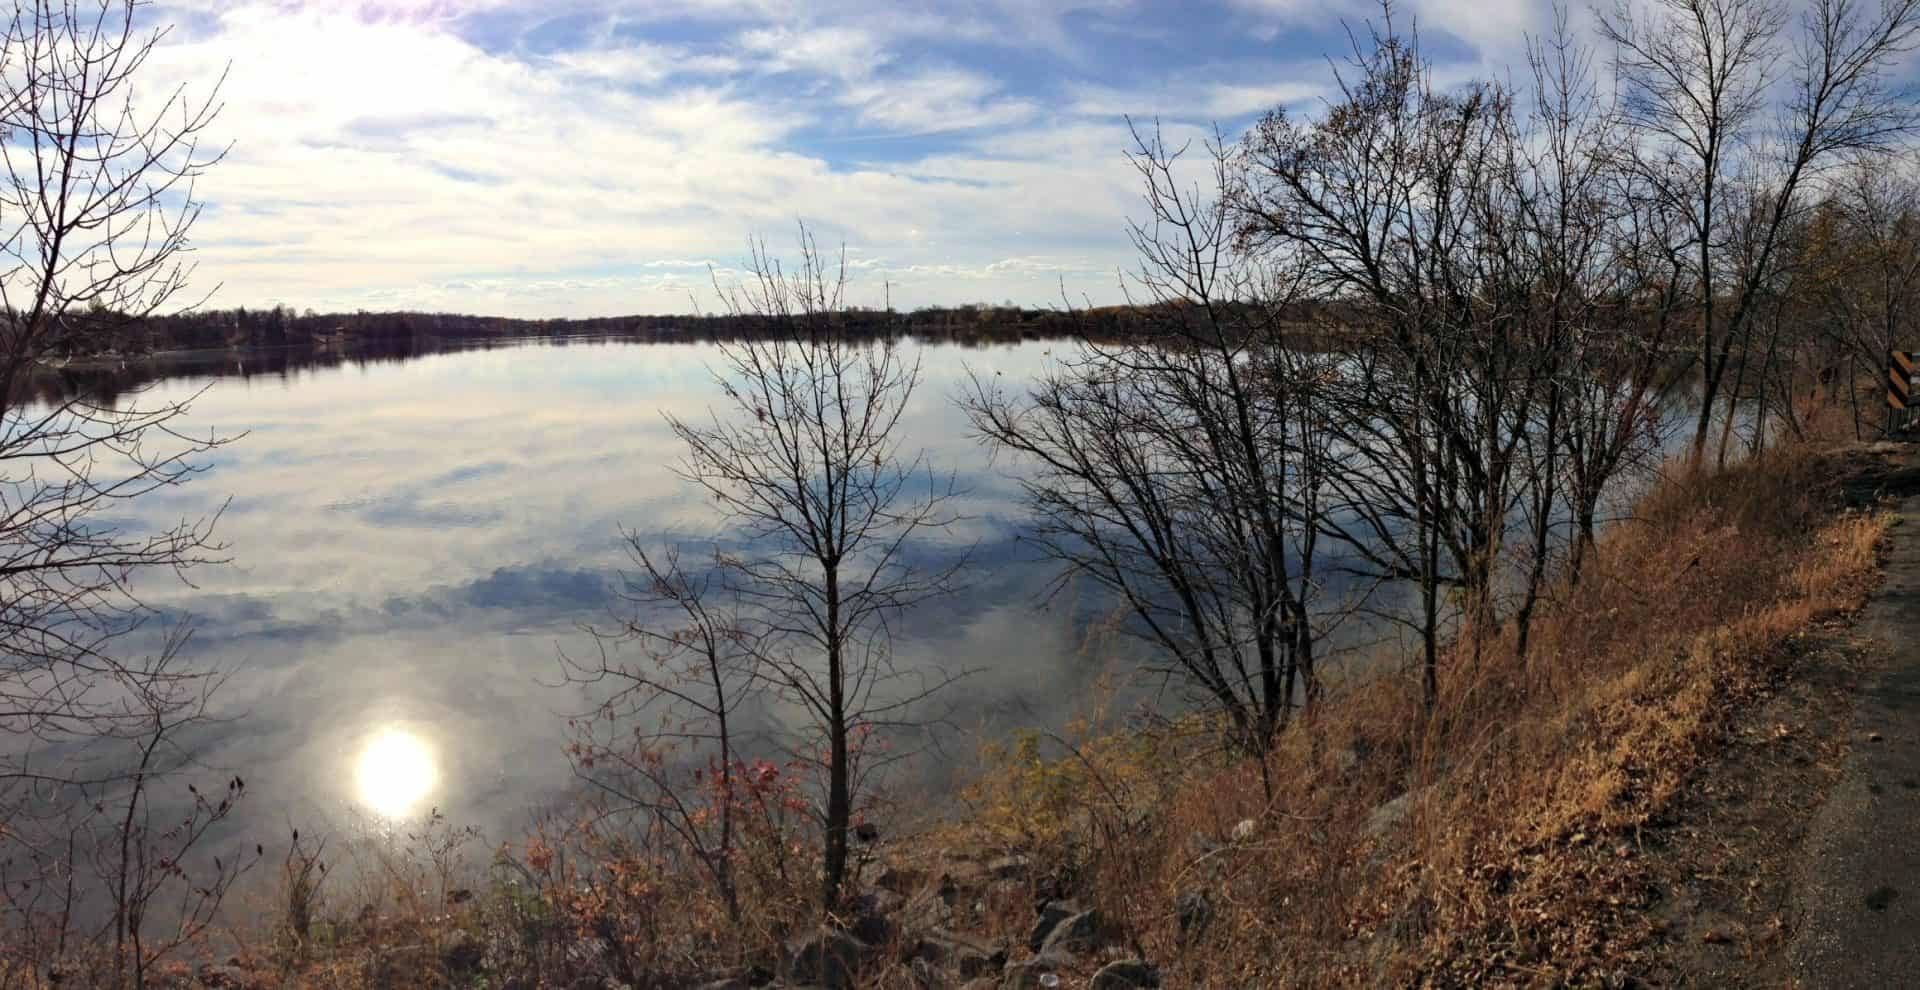 Glass-like Lake Cowdry in Alexandria, Minnesota